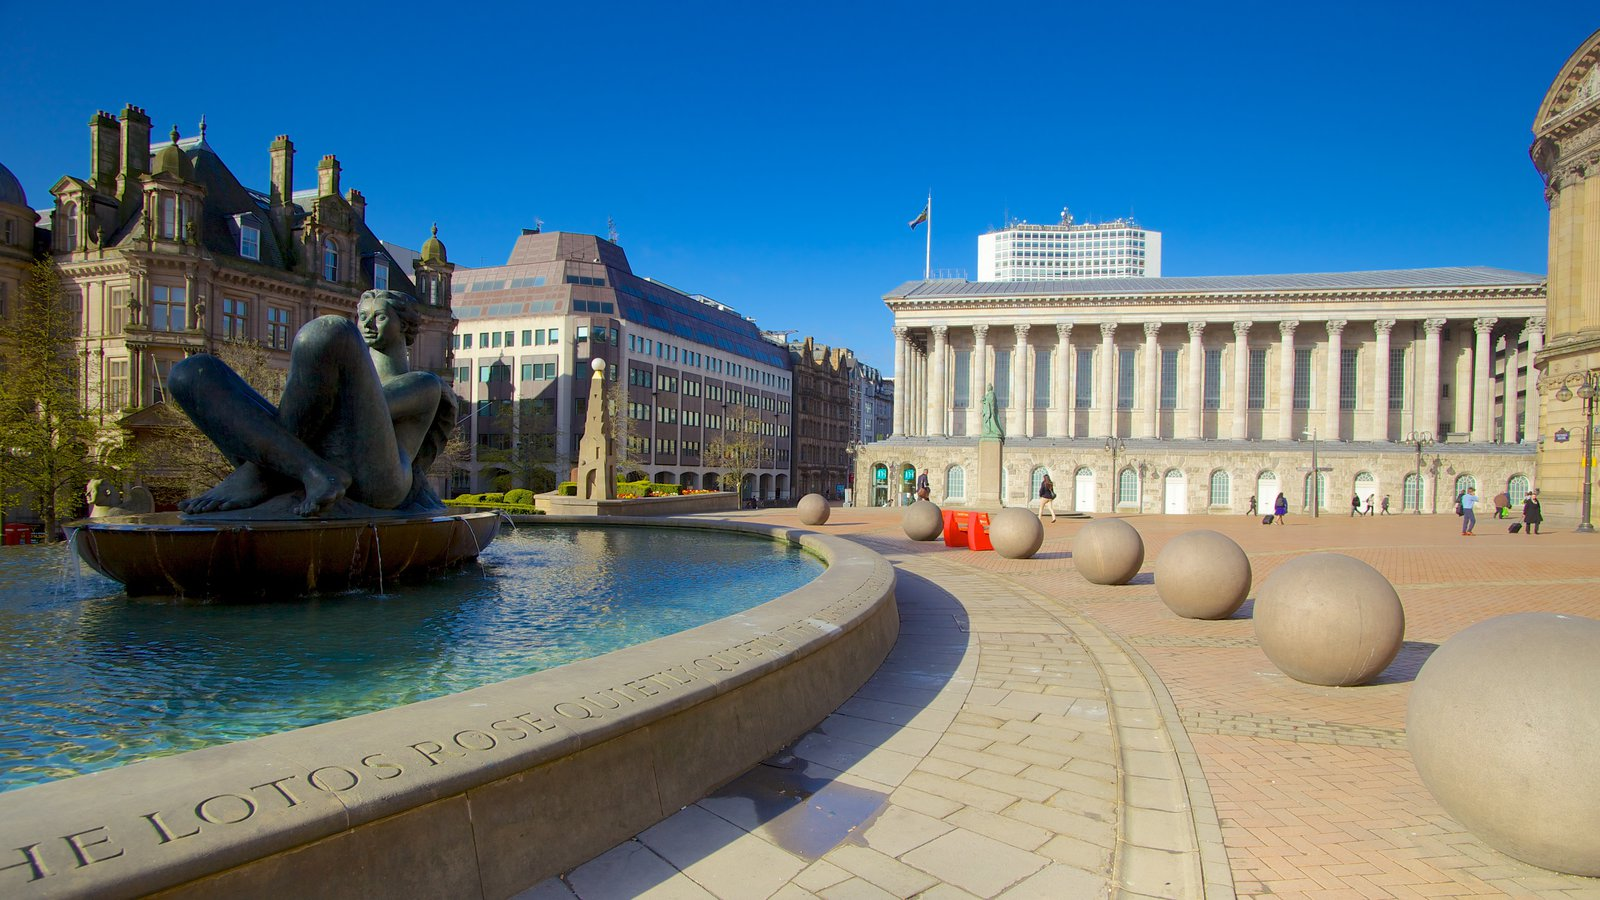 Victoria Square showing a pond, a statue or sculpture and a square or plaza